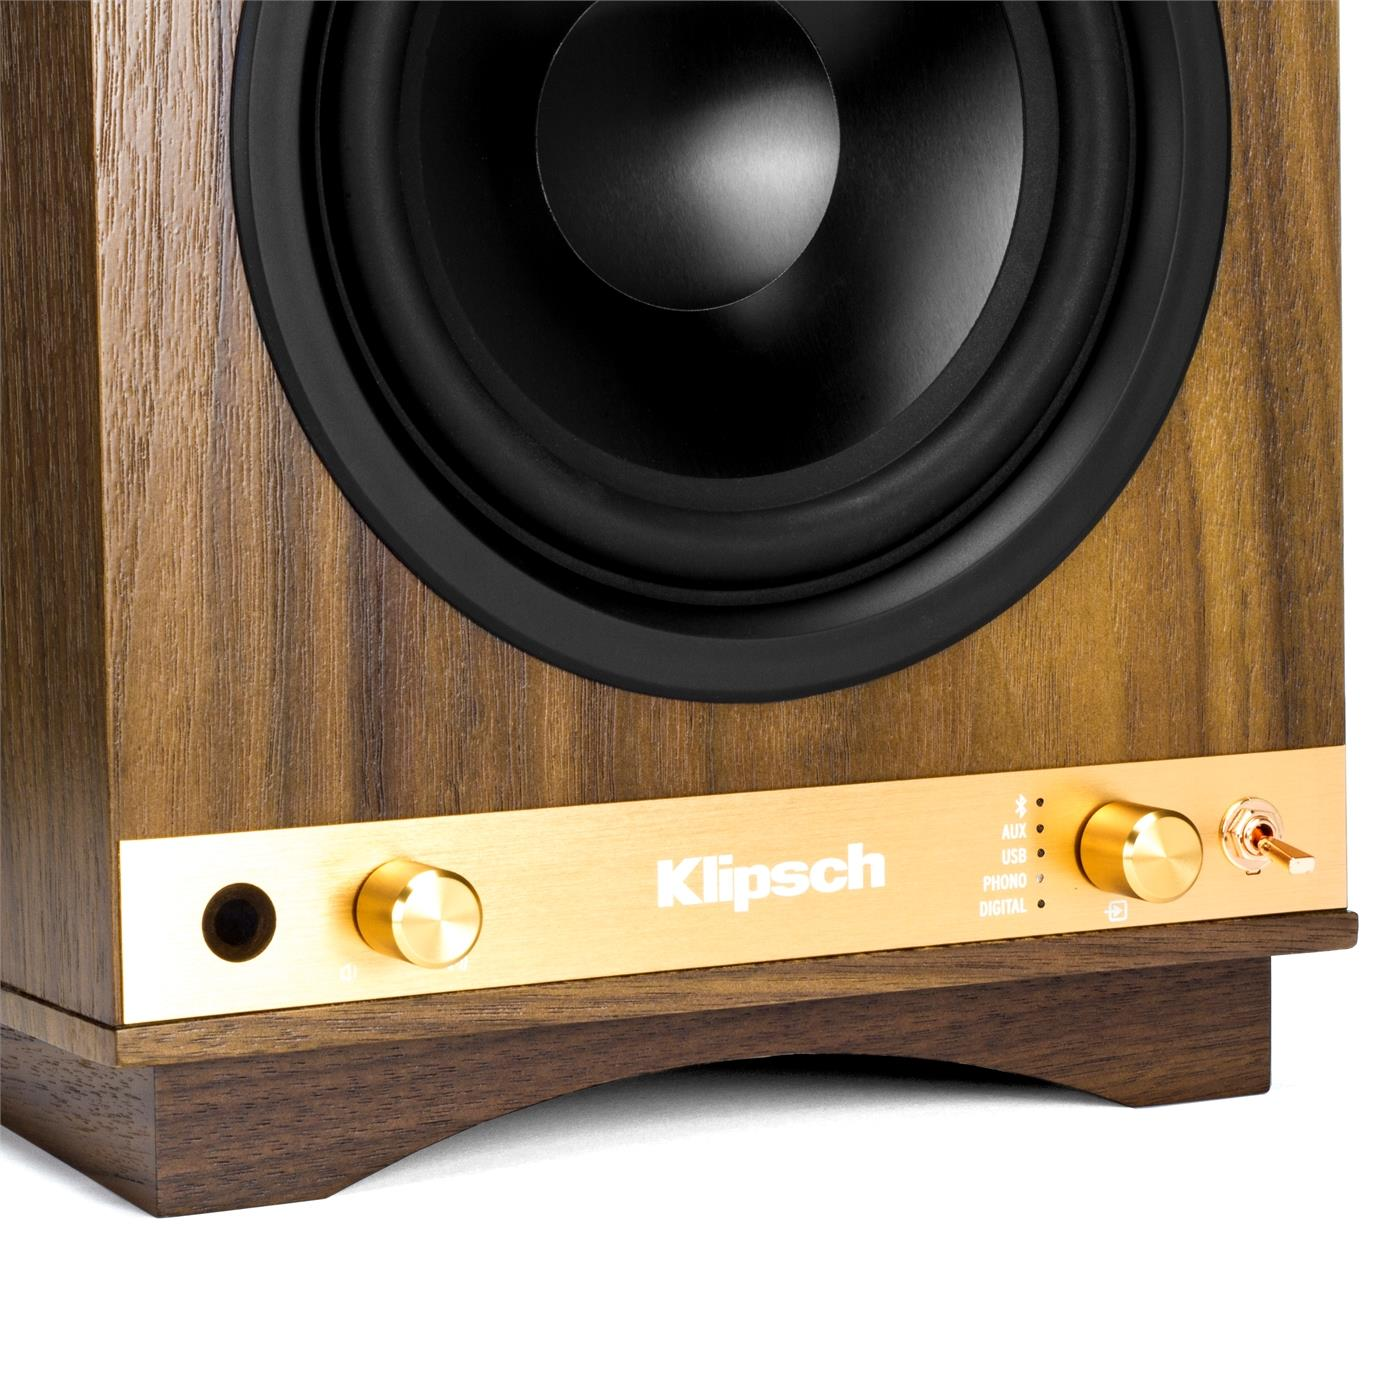 1063288 Klipsch  Klipsch THE SIXES, Walnut Aktive Høyttalere, Bluetooth, RIAA